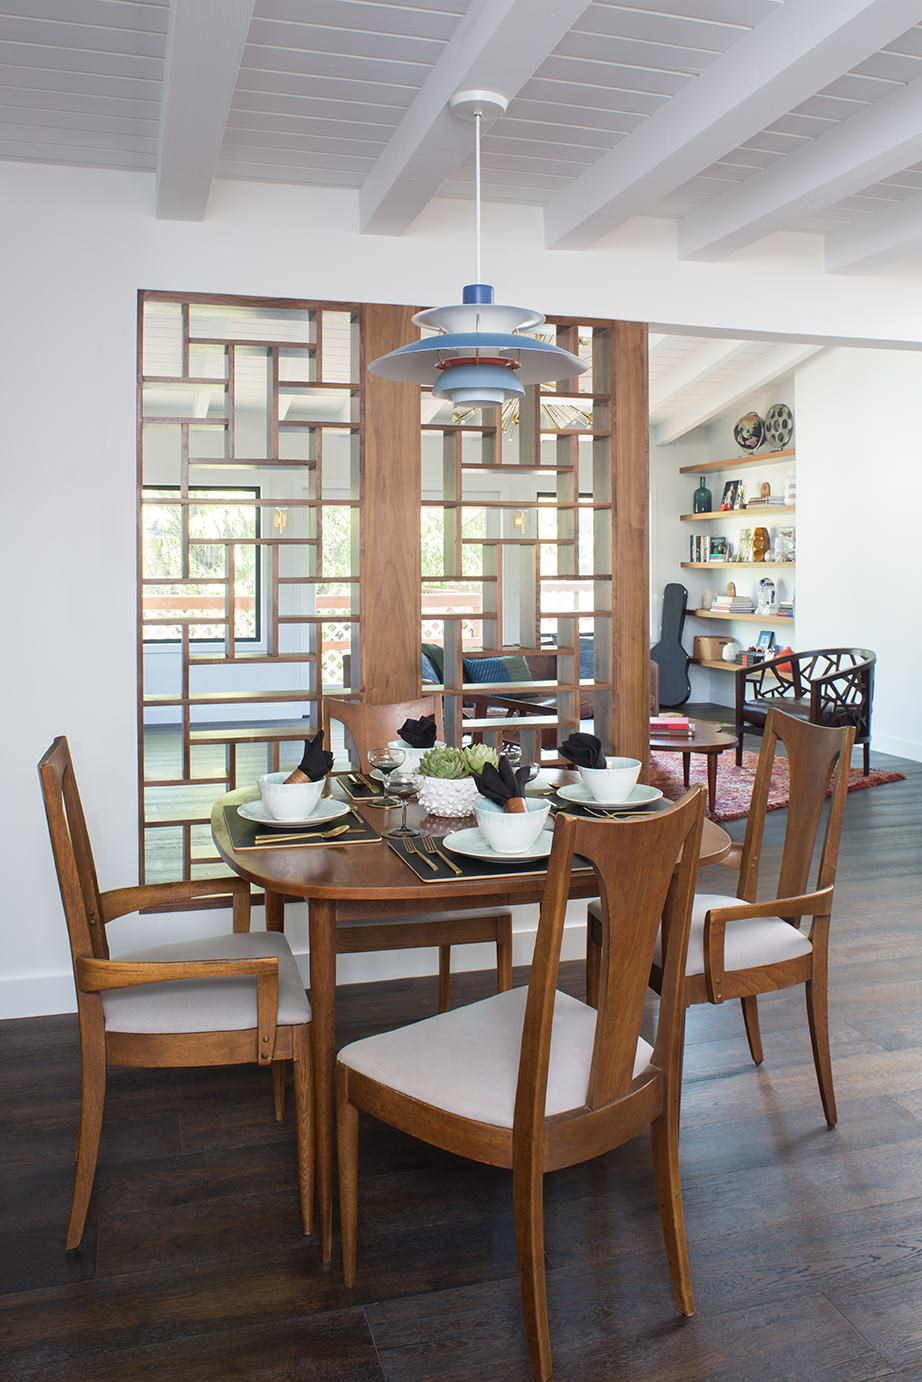 75 Beautiful Mid Century Modern Dining Room Pictures Ideas April 2021 Houzz